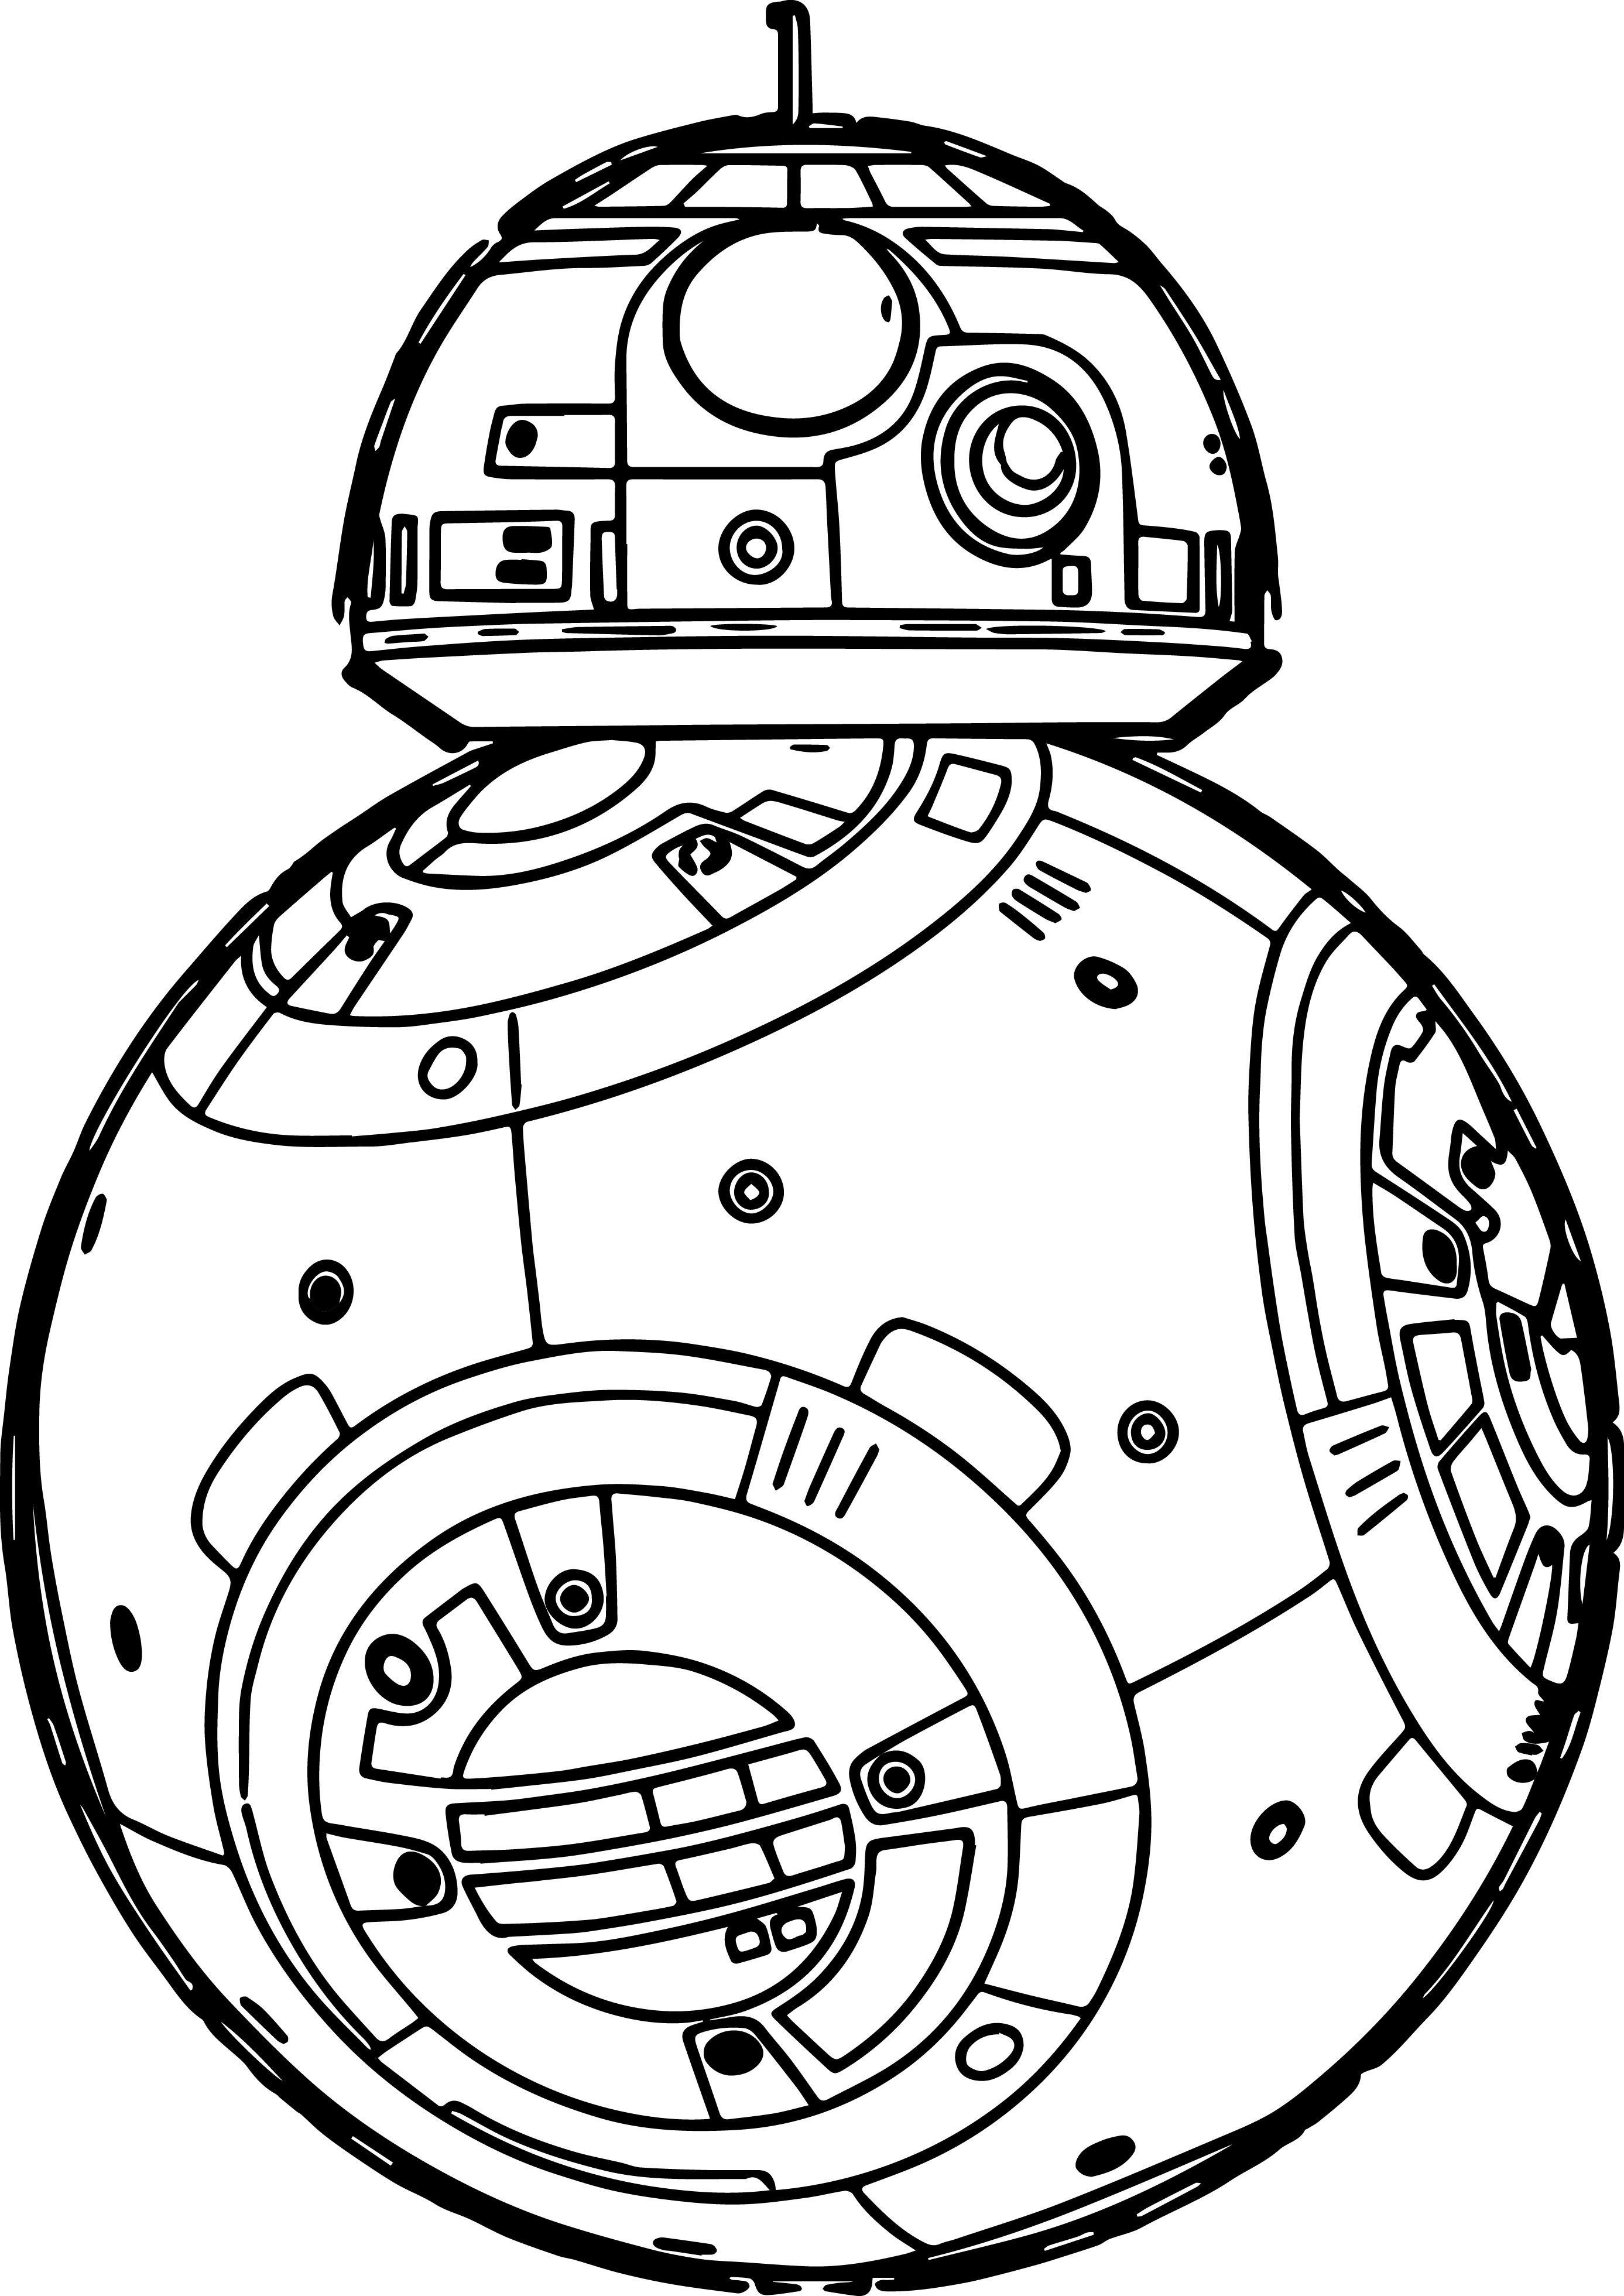 Stormtrooper Coloring Page Star Wars Stormtrooper Coloring ...